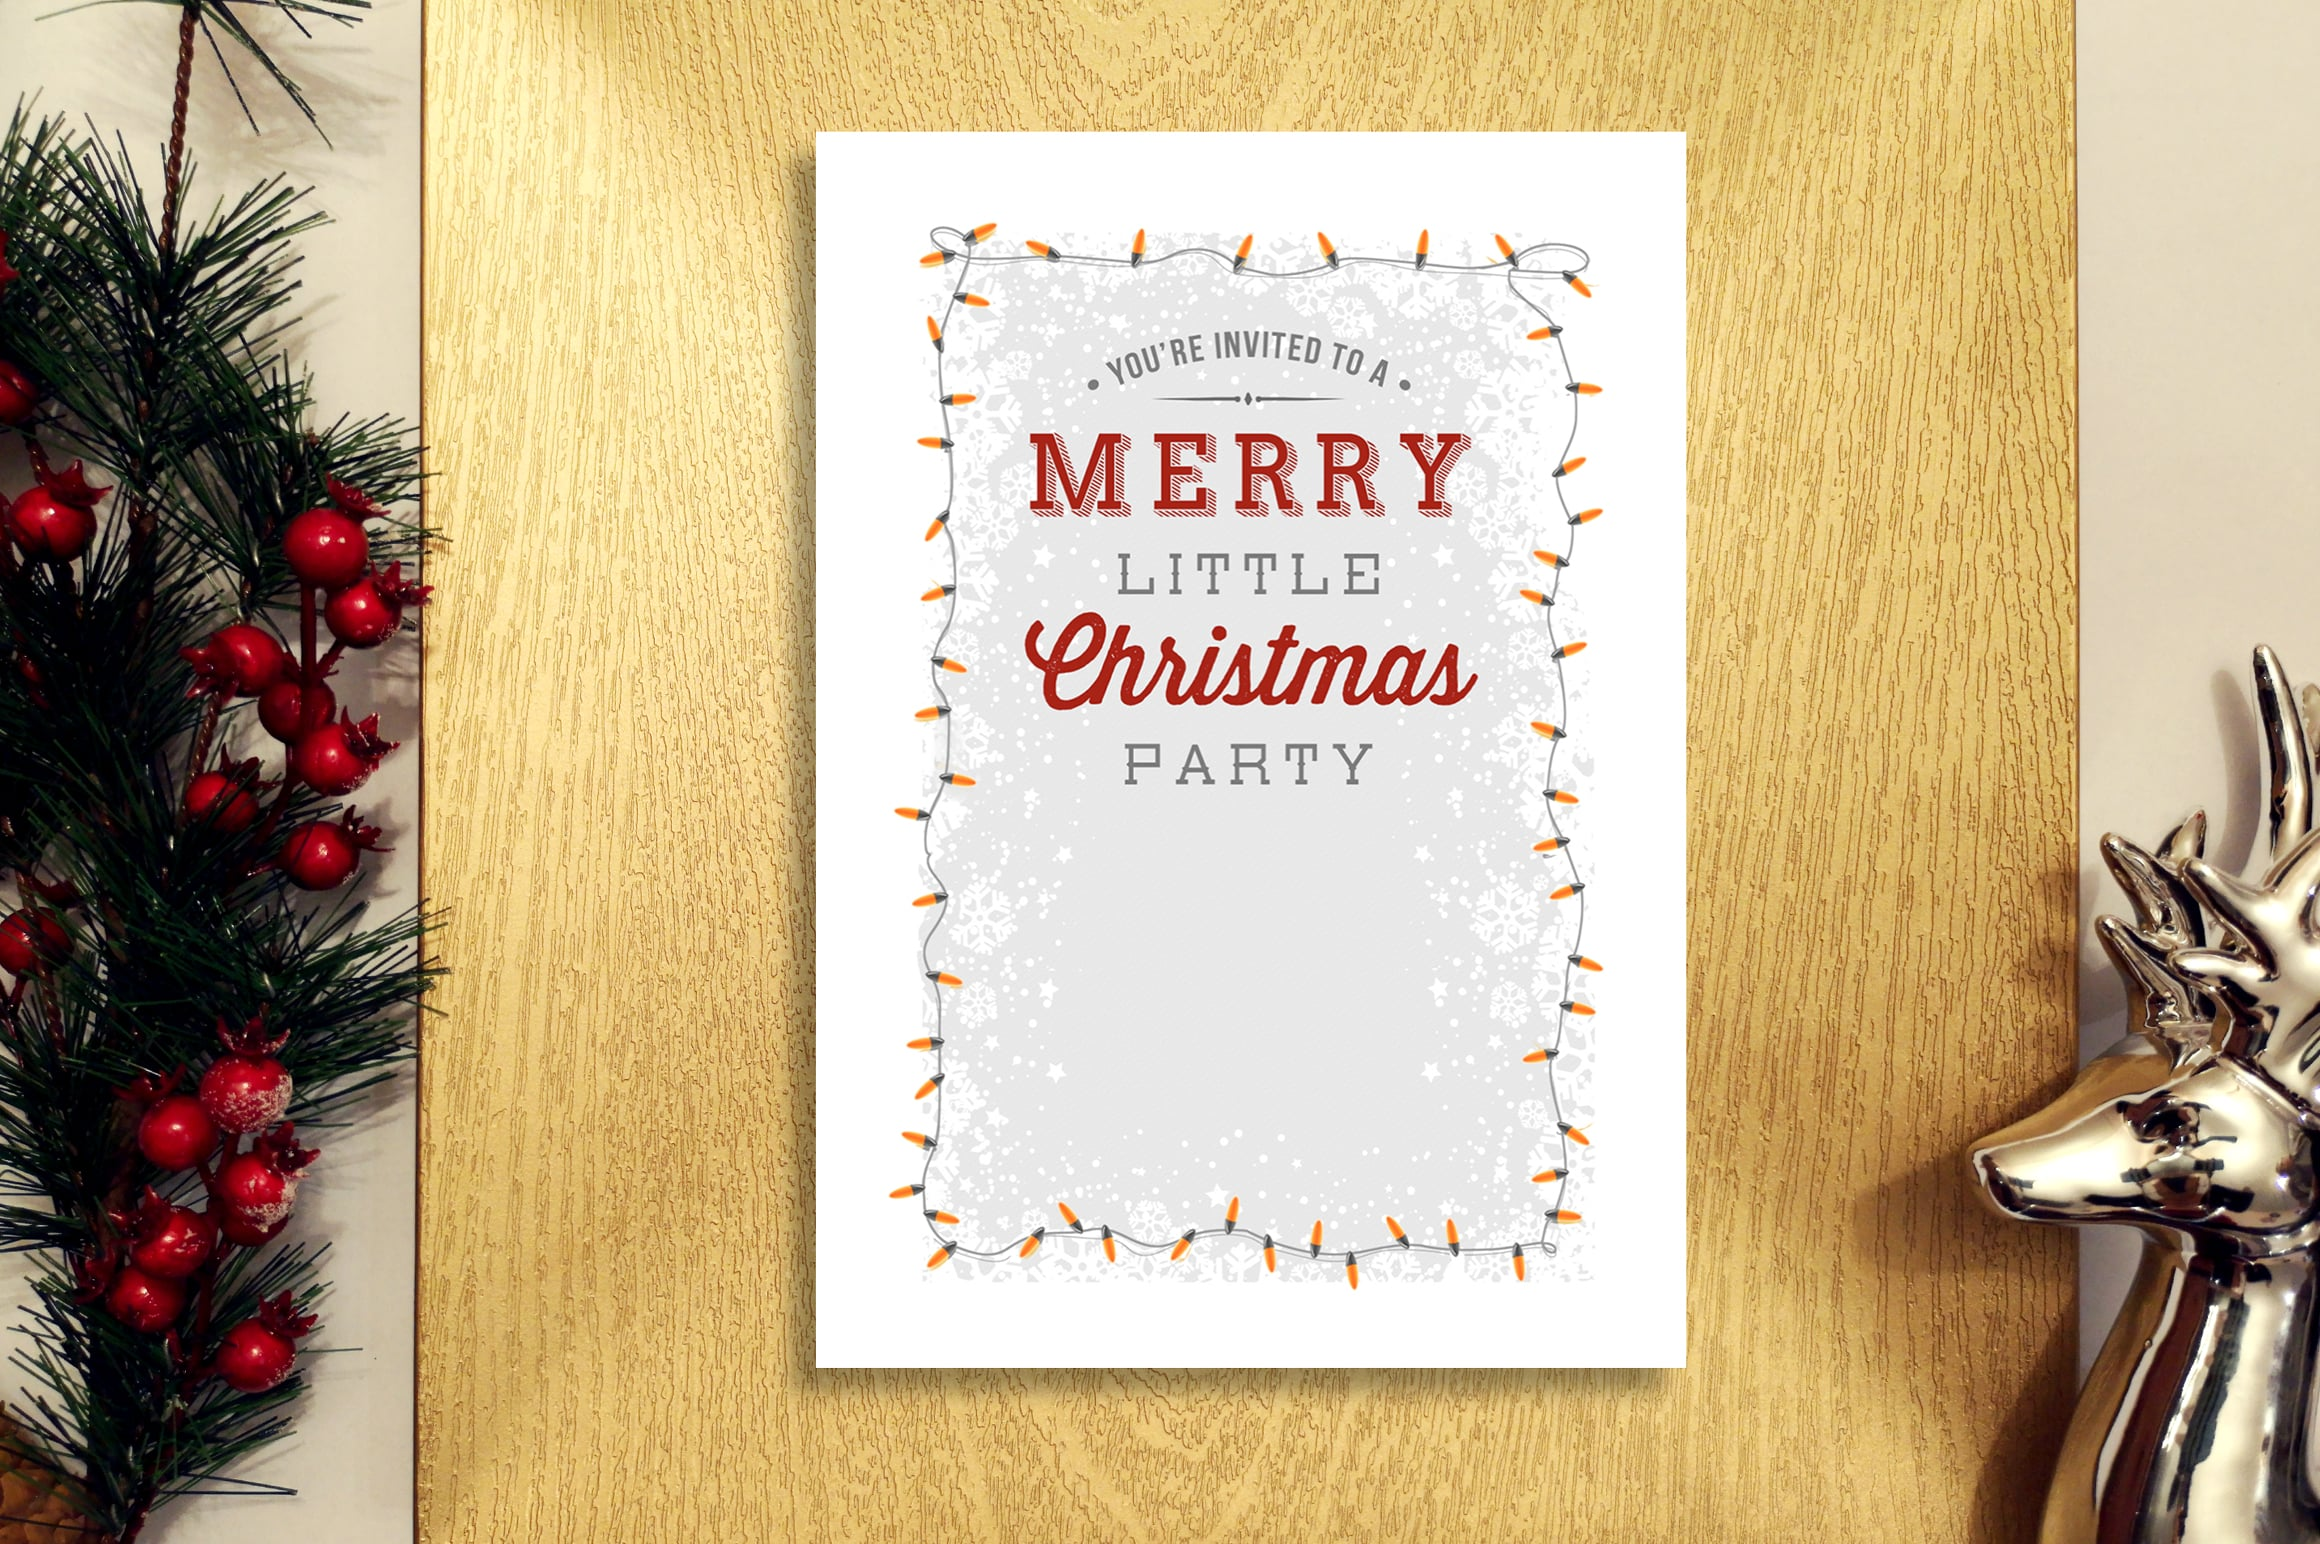 12 Christmas Mockups + Backgrounds - $9 ONLY - 7